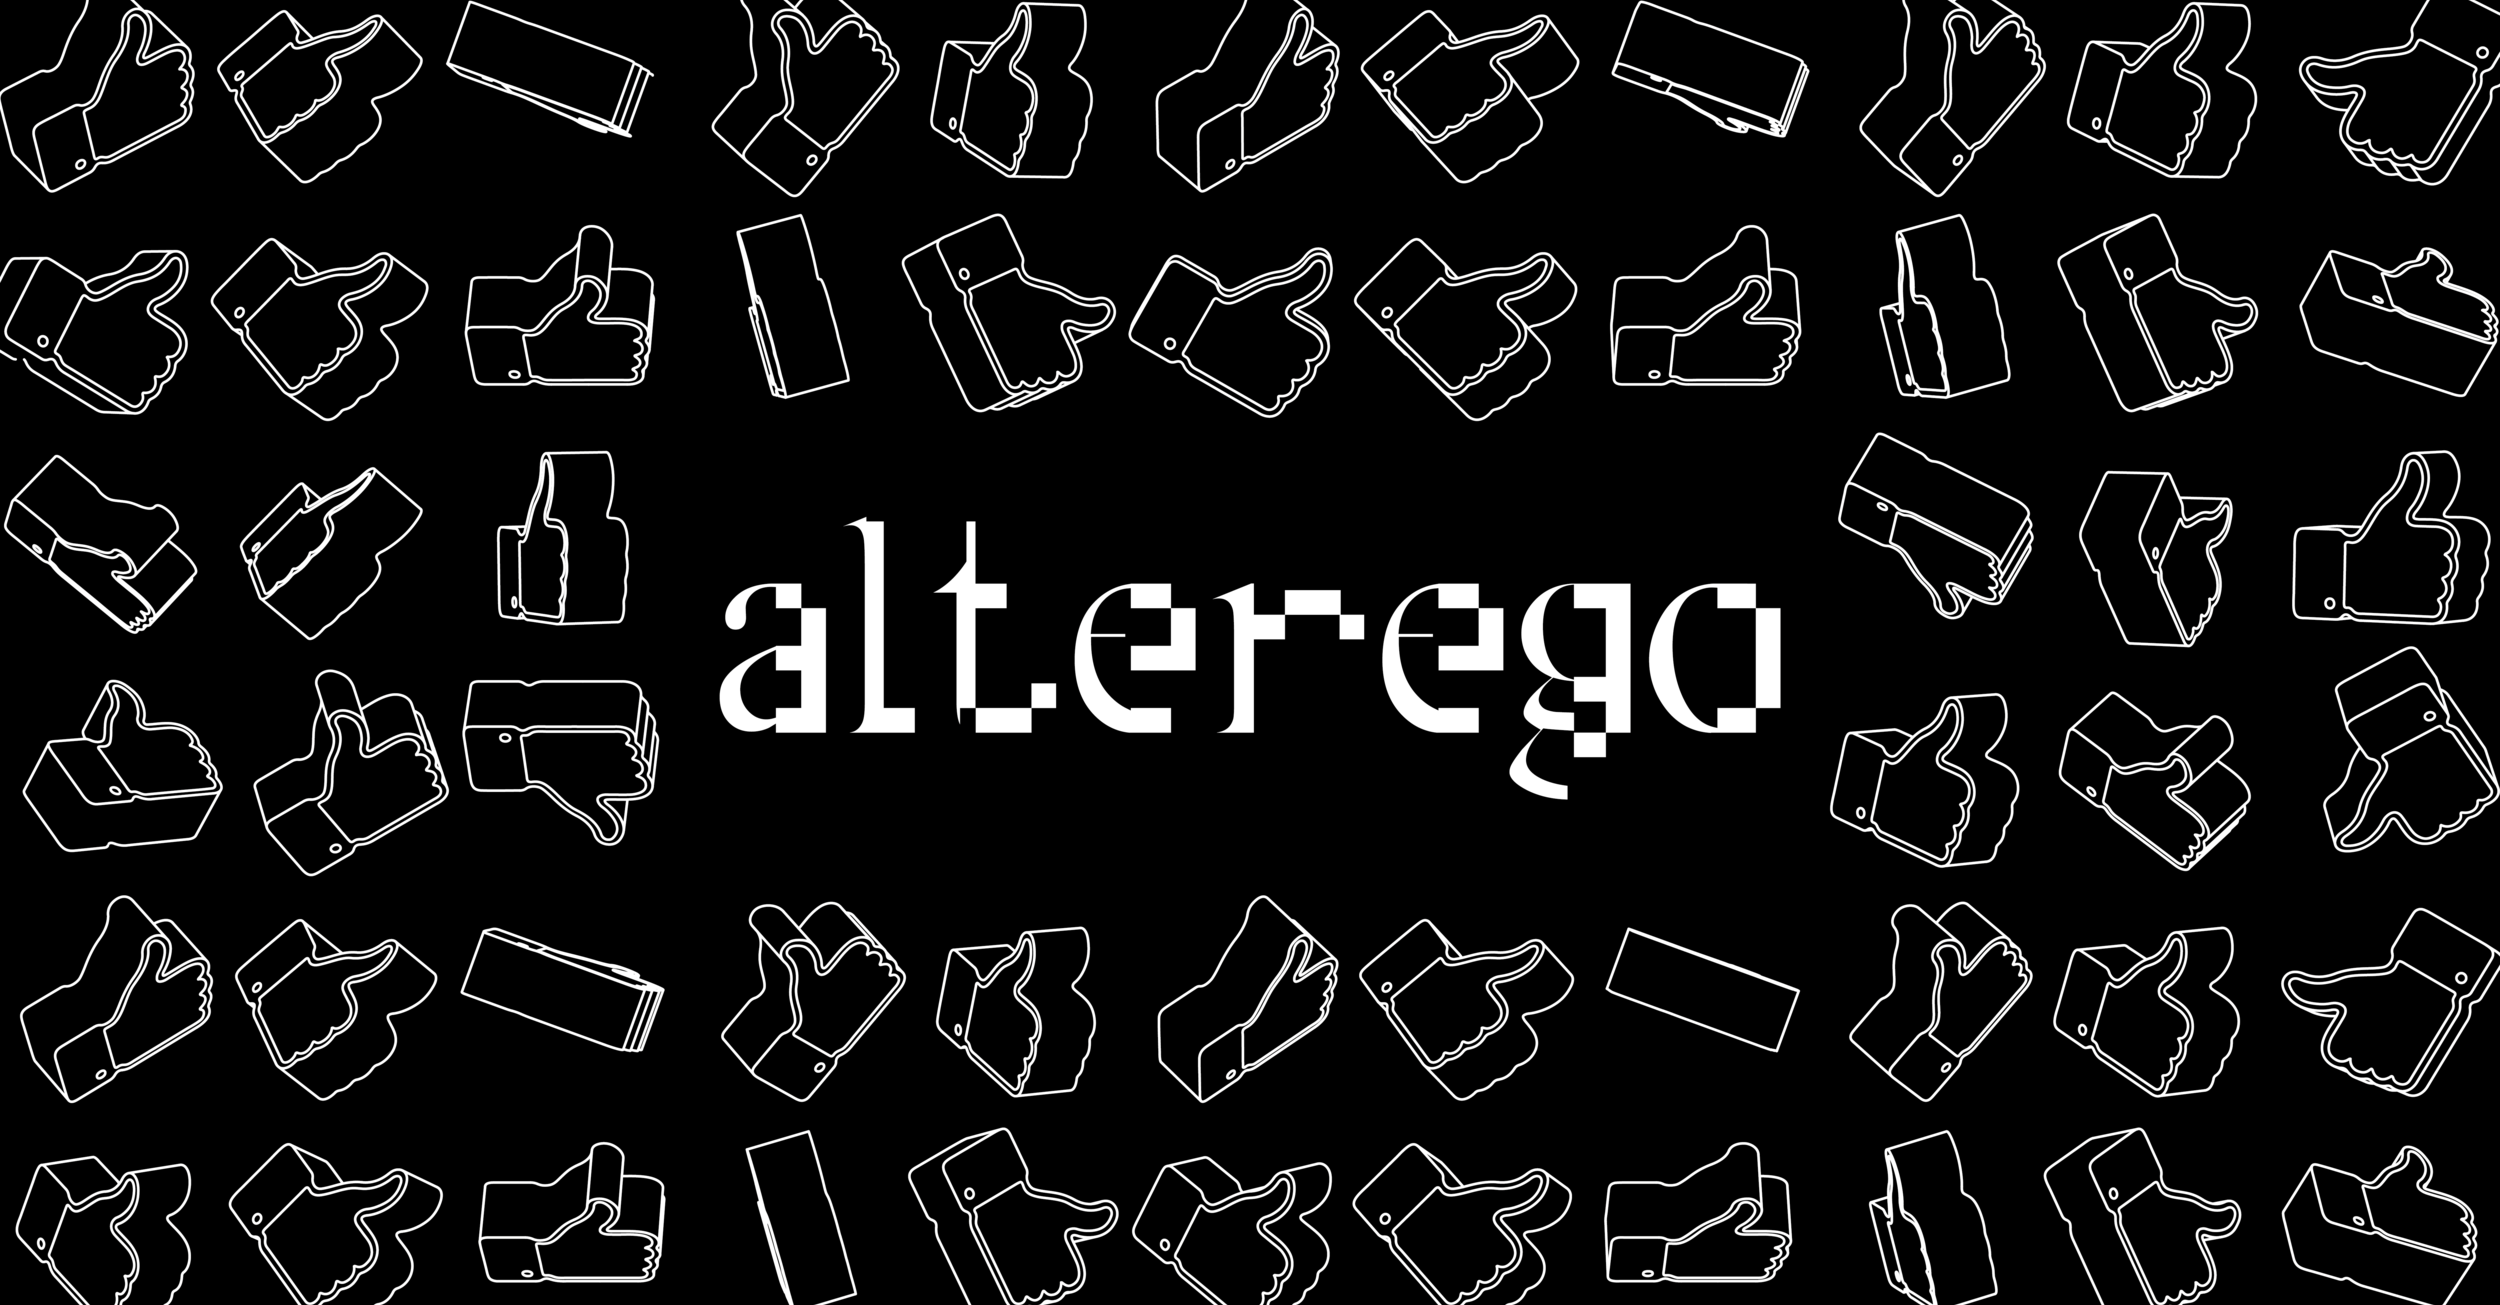 Alterego-05.png